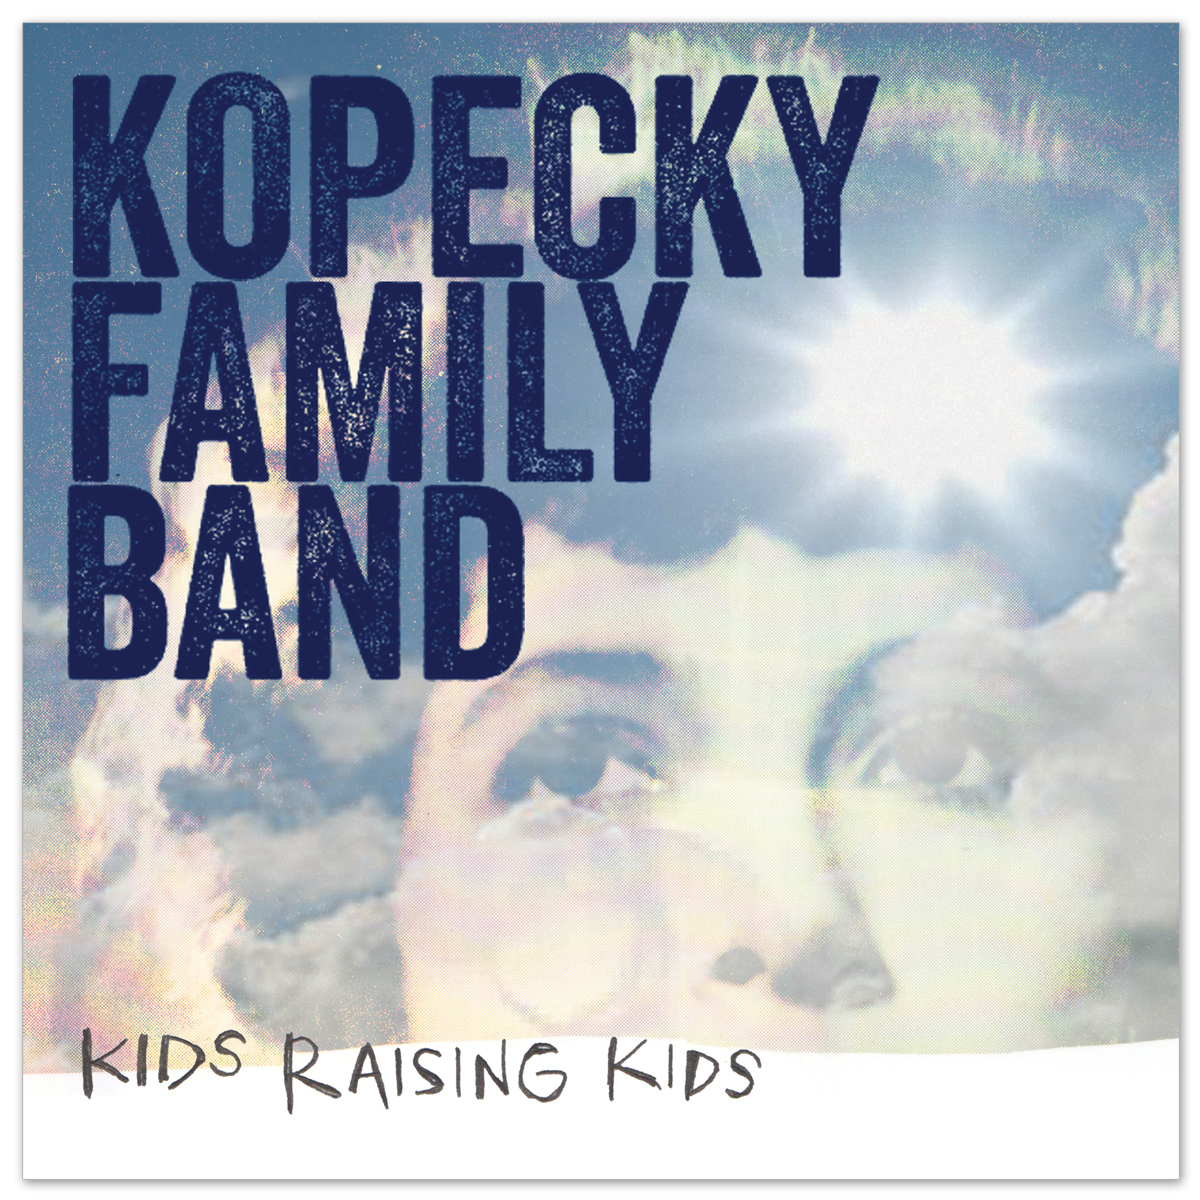 Kopecky Family Band - Kids Raising Kids CD